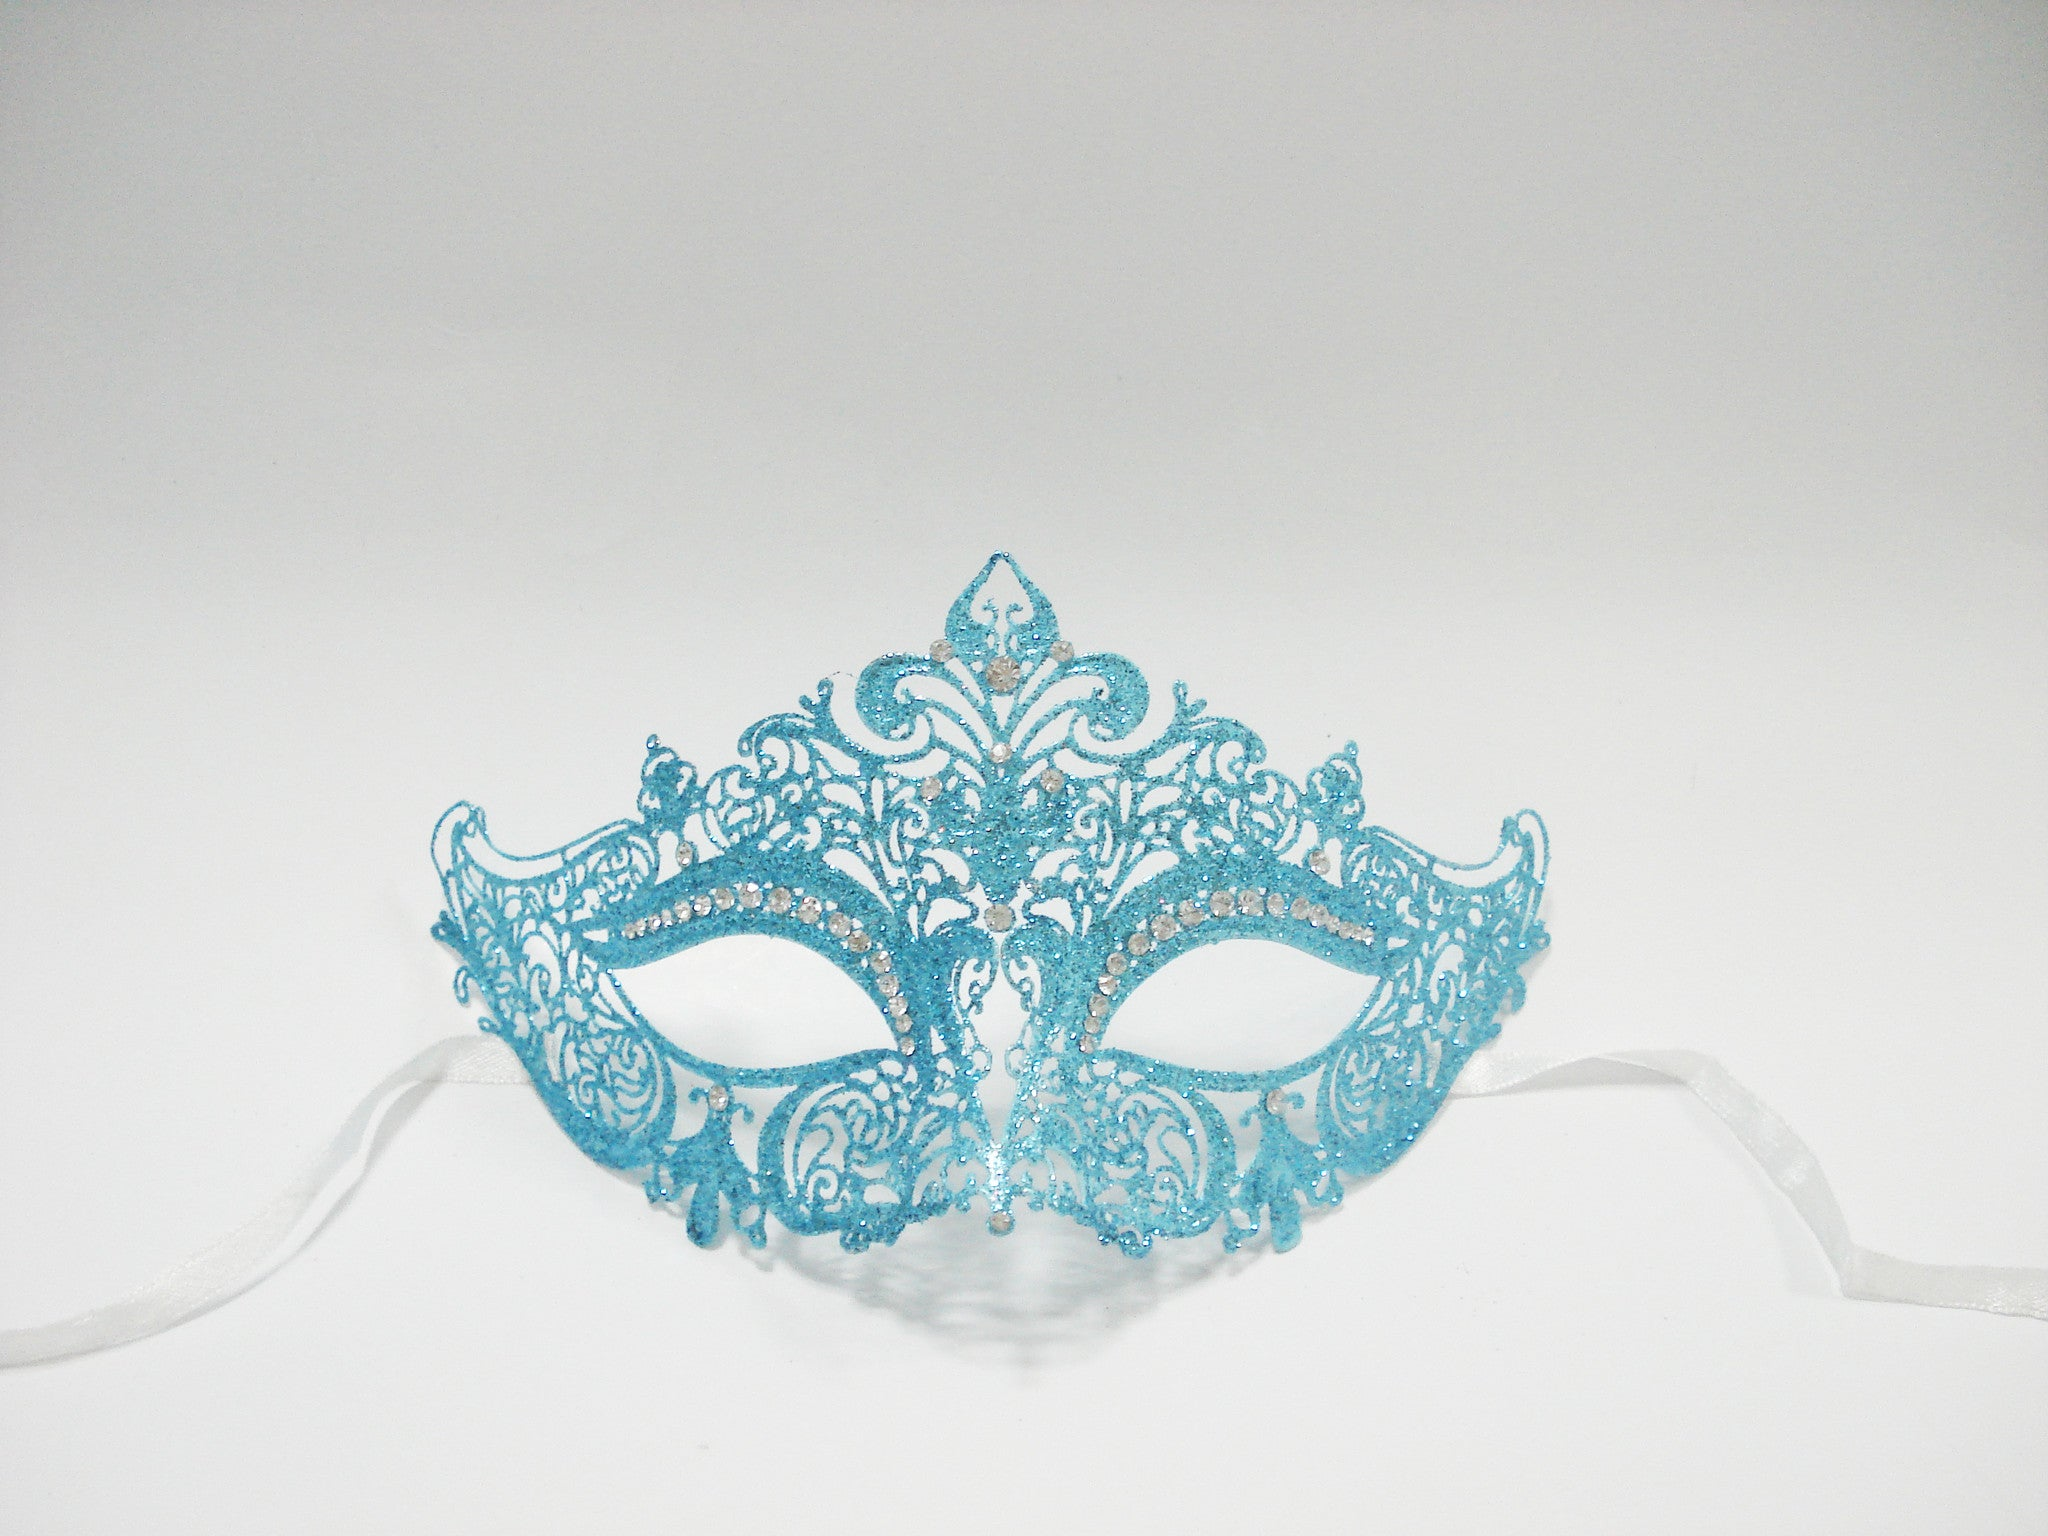 MK127 - Skyblue Glitter Mask -  CLEARANCE 50% OFF LISTED PRICE